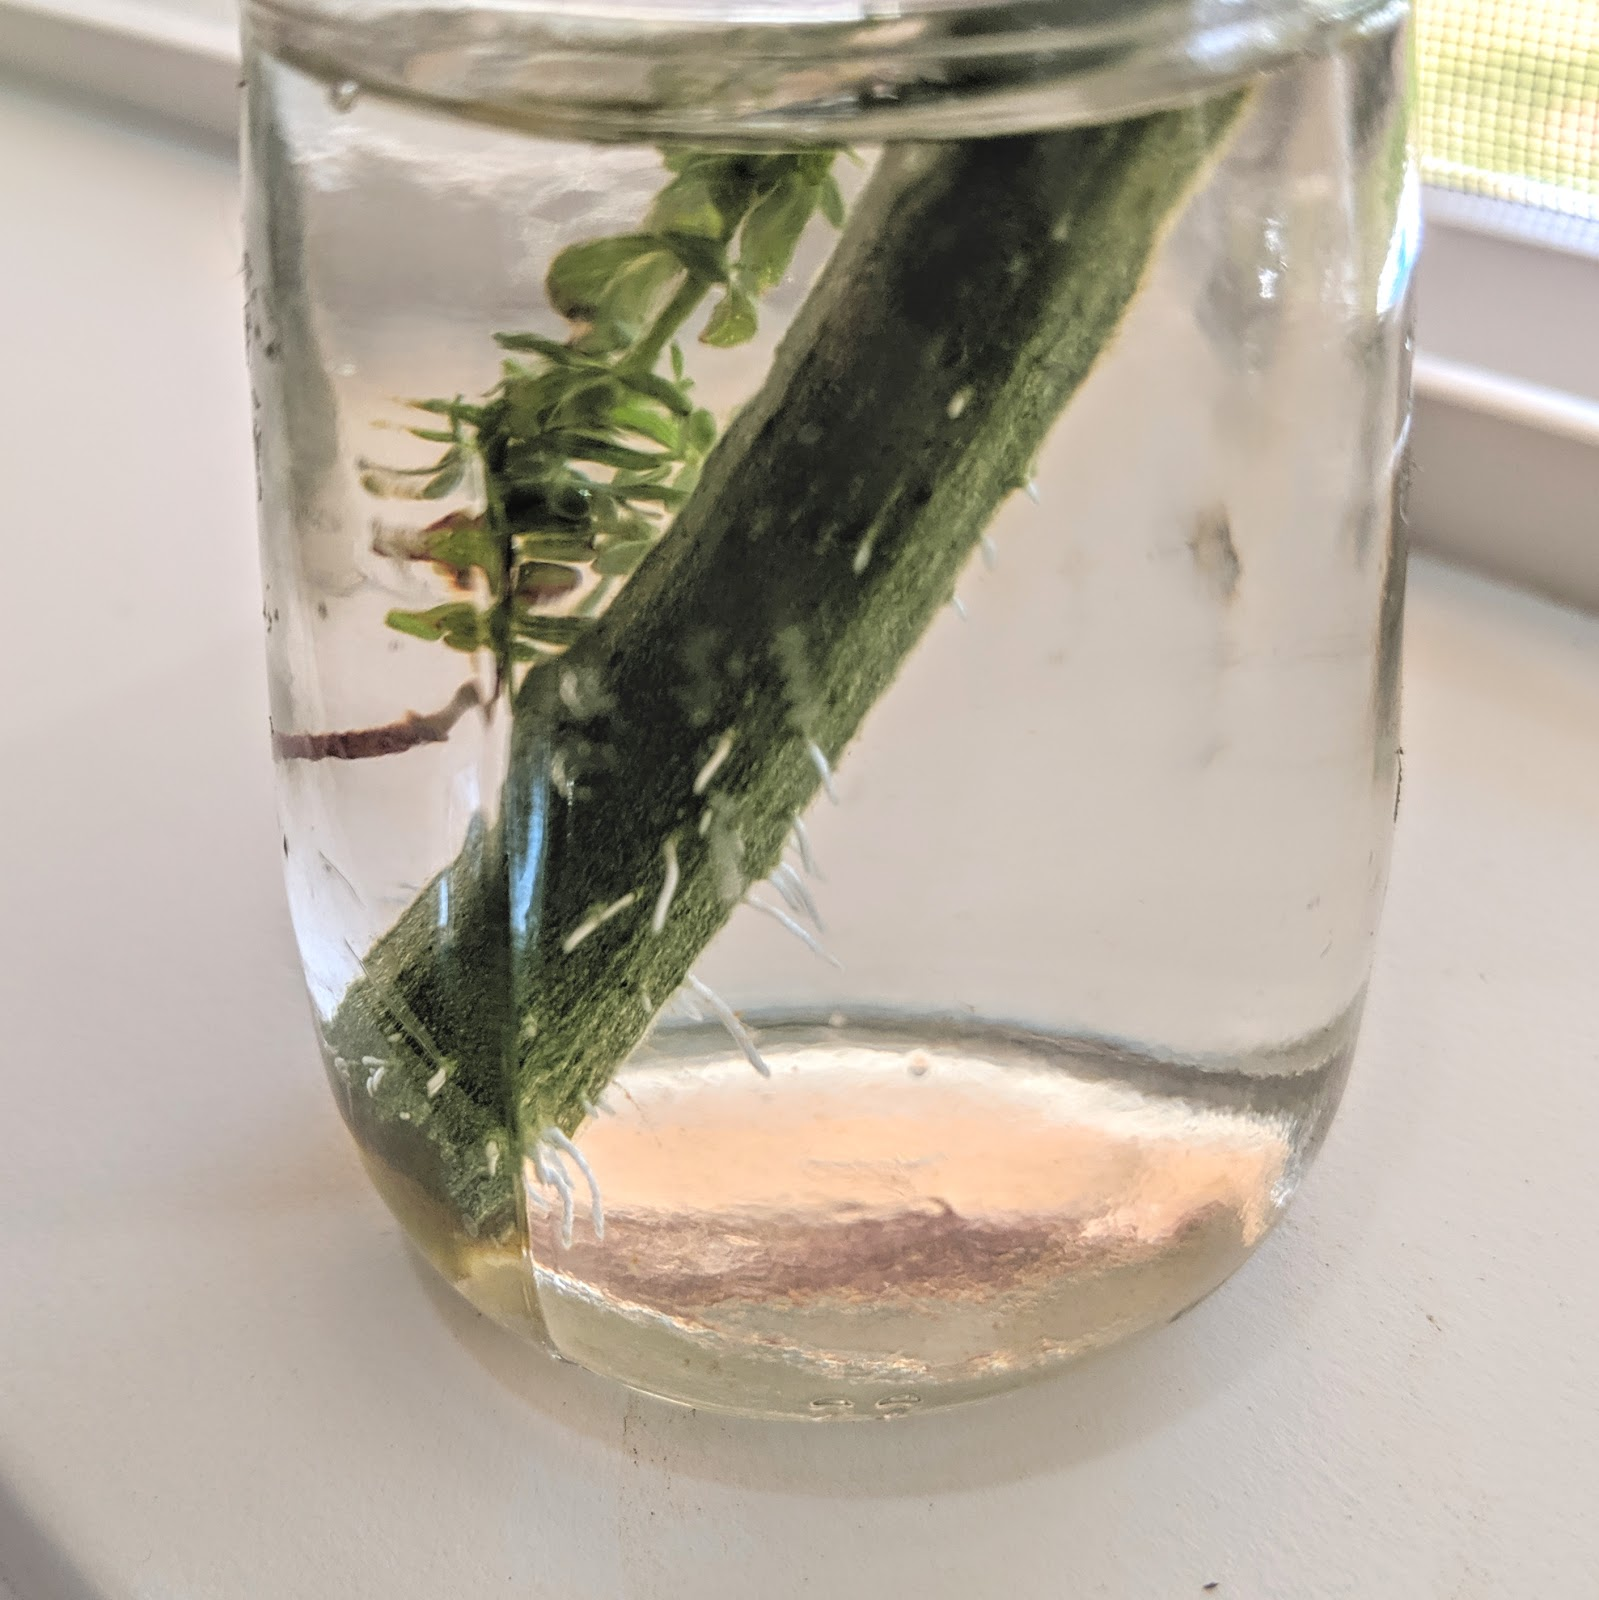 Rooting Tomato Cutting in Water